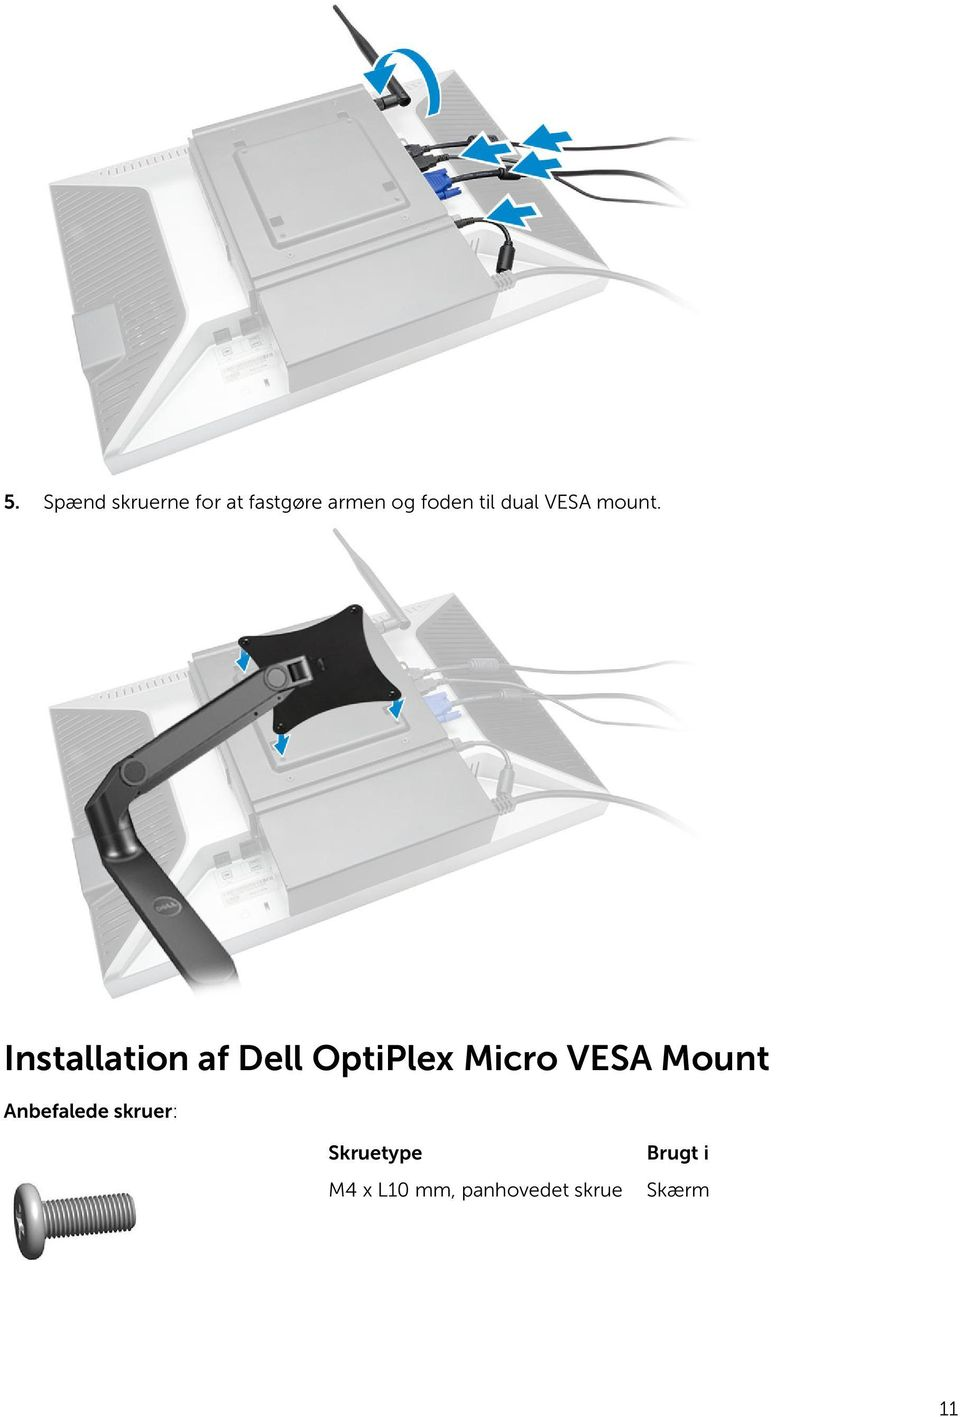 Installation af Dell OptiPlex Micro VESA Mount